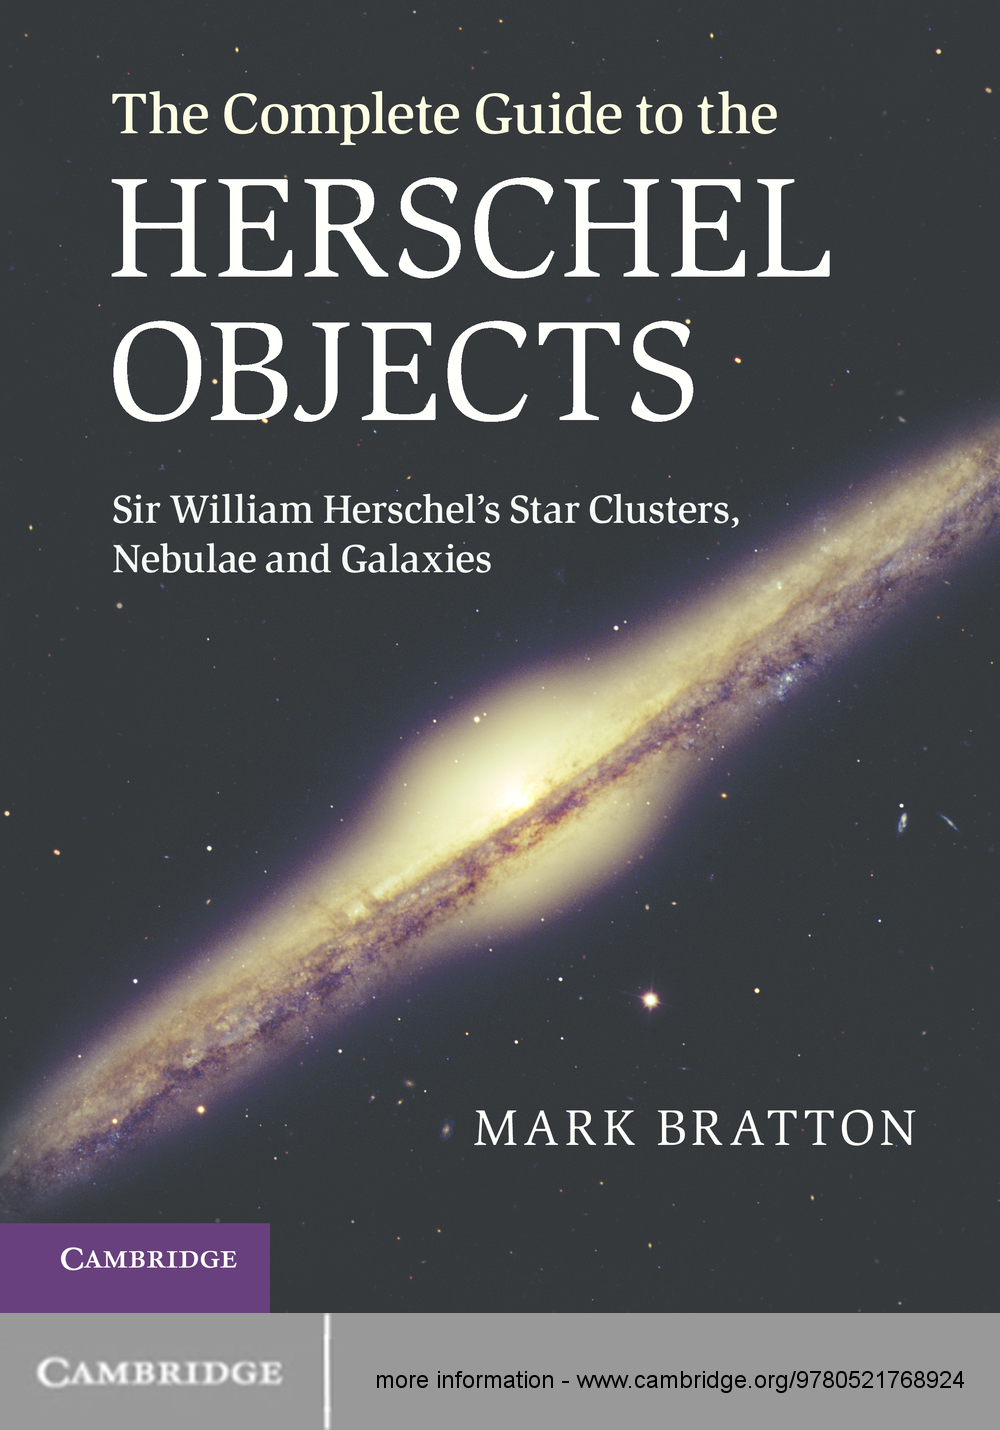 The Complete Guide to the Herschel Objects Sir William Herschel's Star Clusters,  Nebulae and Galaxies